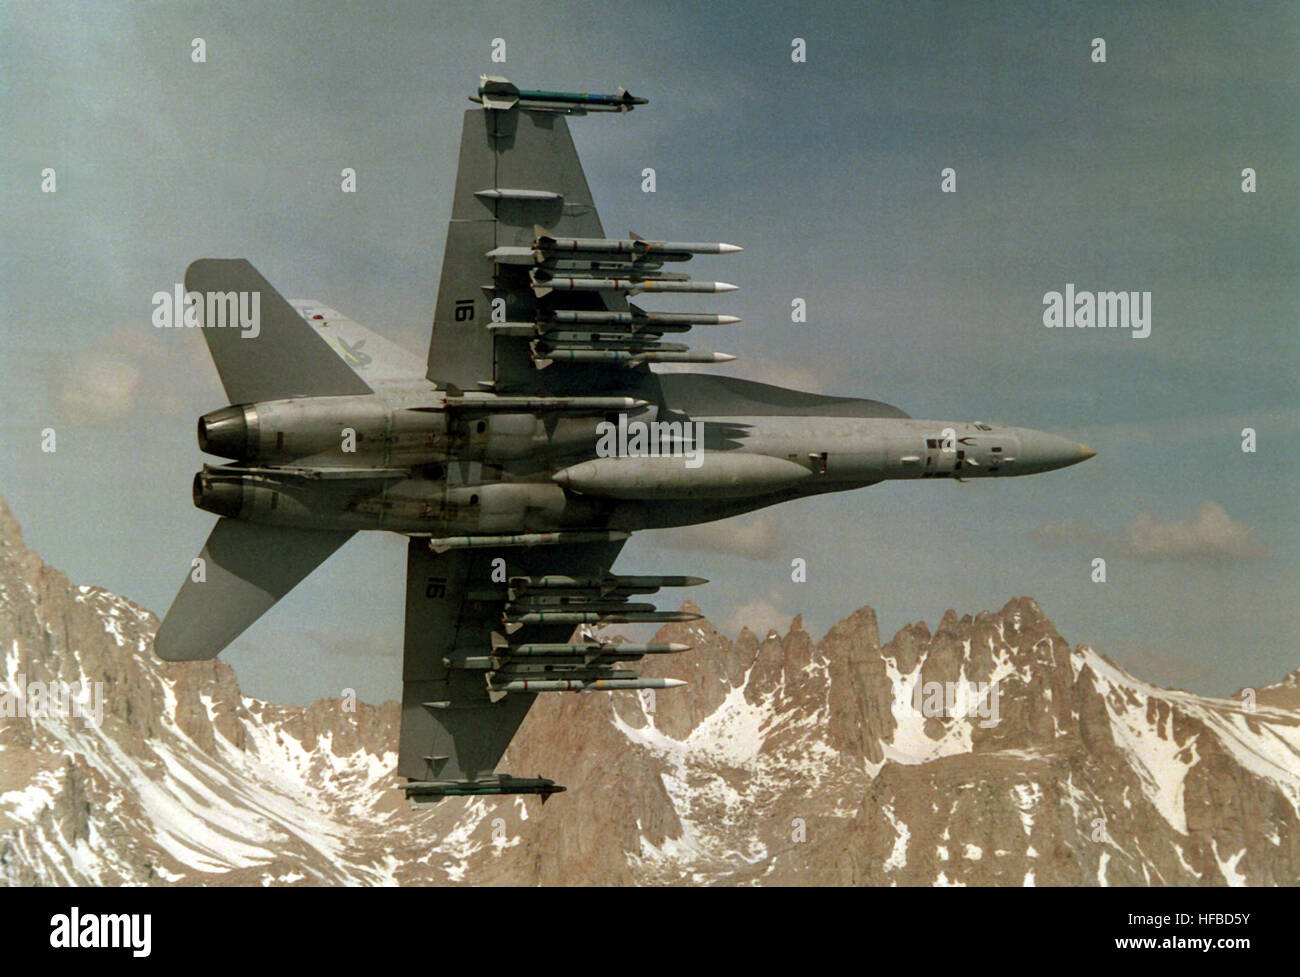 An underside view of an Air Test and Evaluation Squadron 4 (VX-4) F/A-18C Hornet aircraft in-flight.  VX-4 is testing - Stock Image